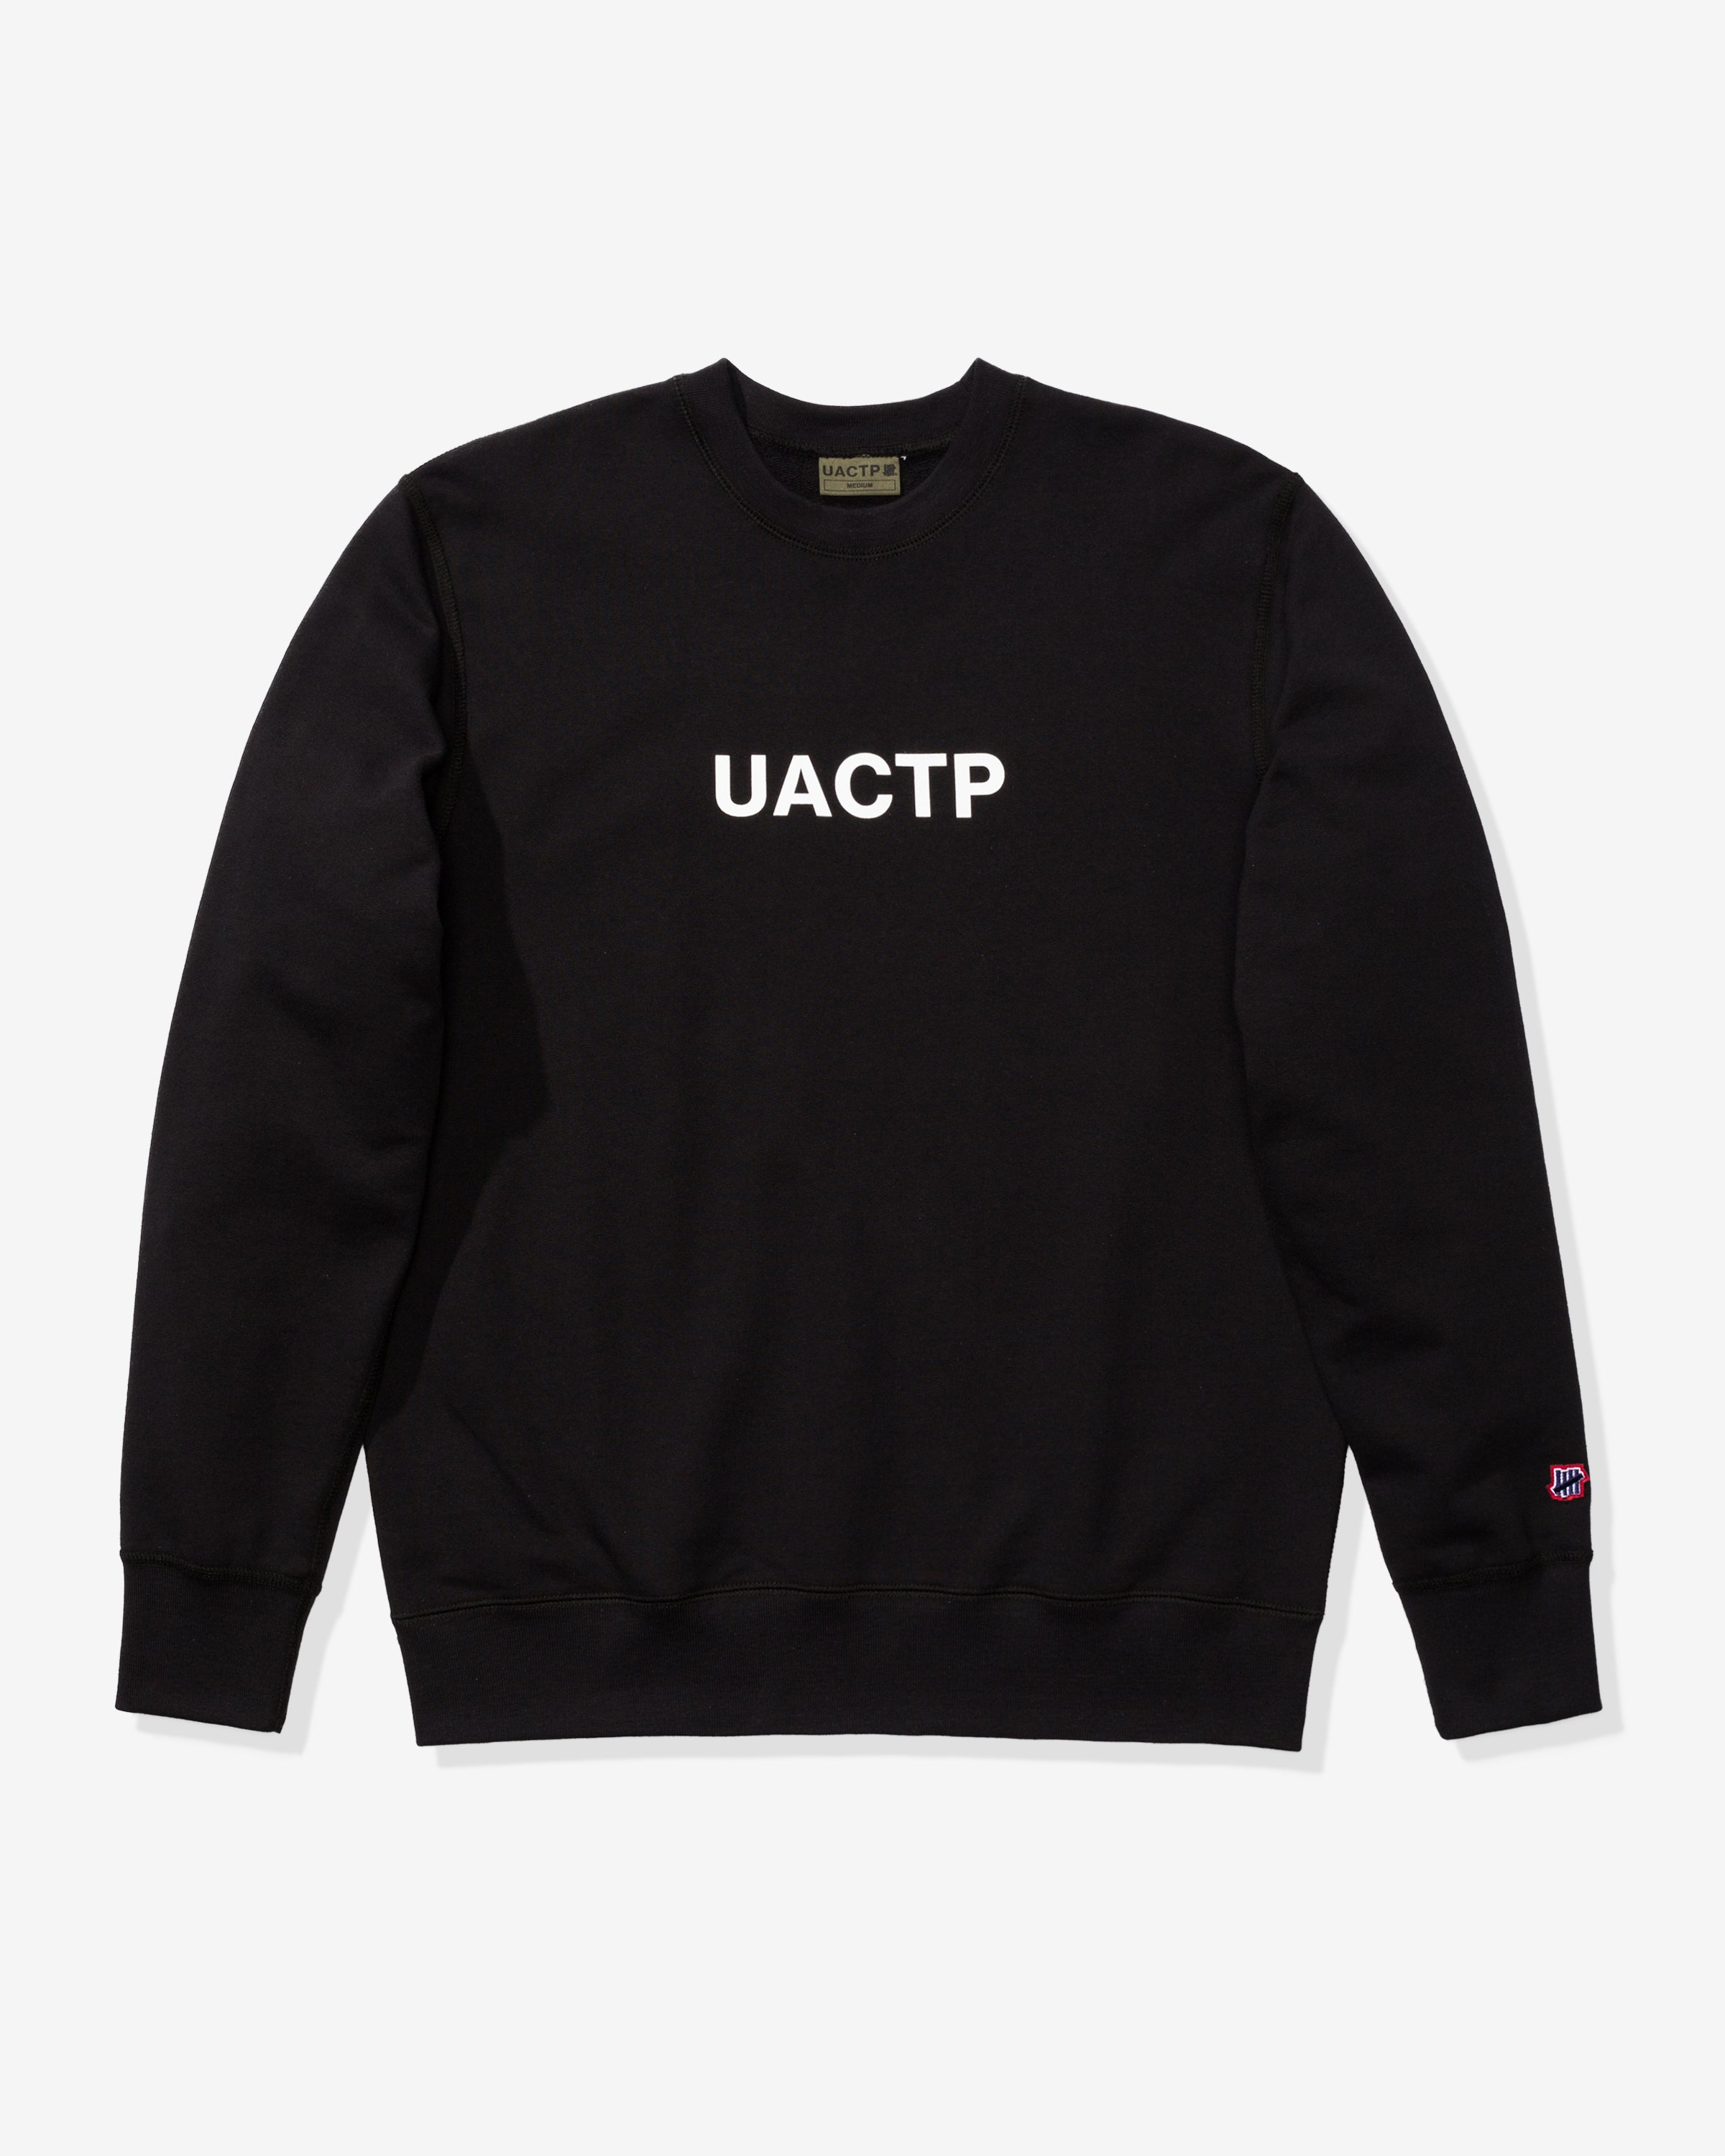 UACTP CORE CREWNECK - BLACK